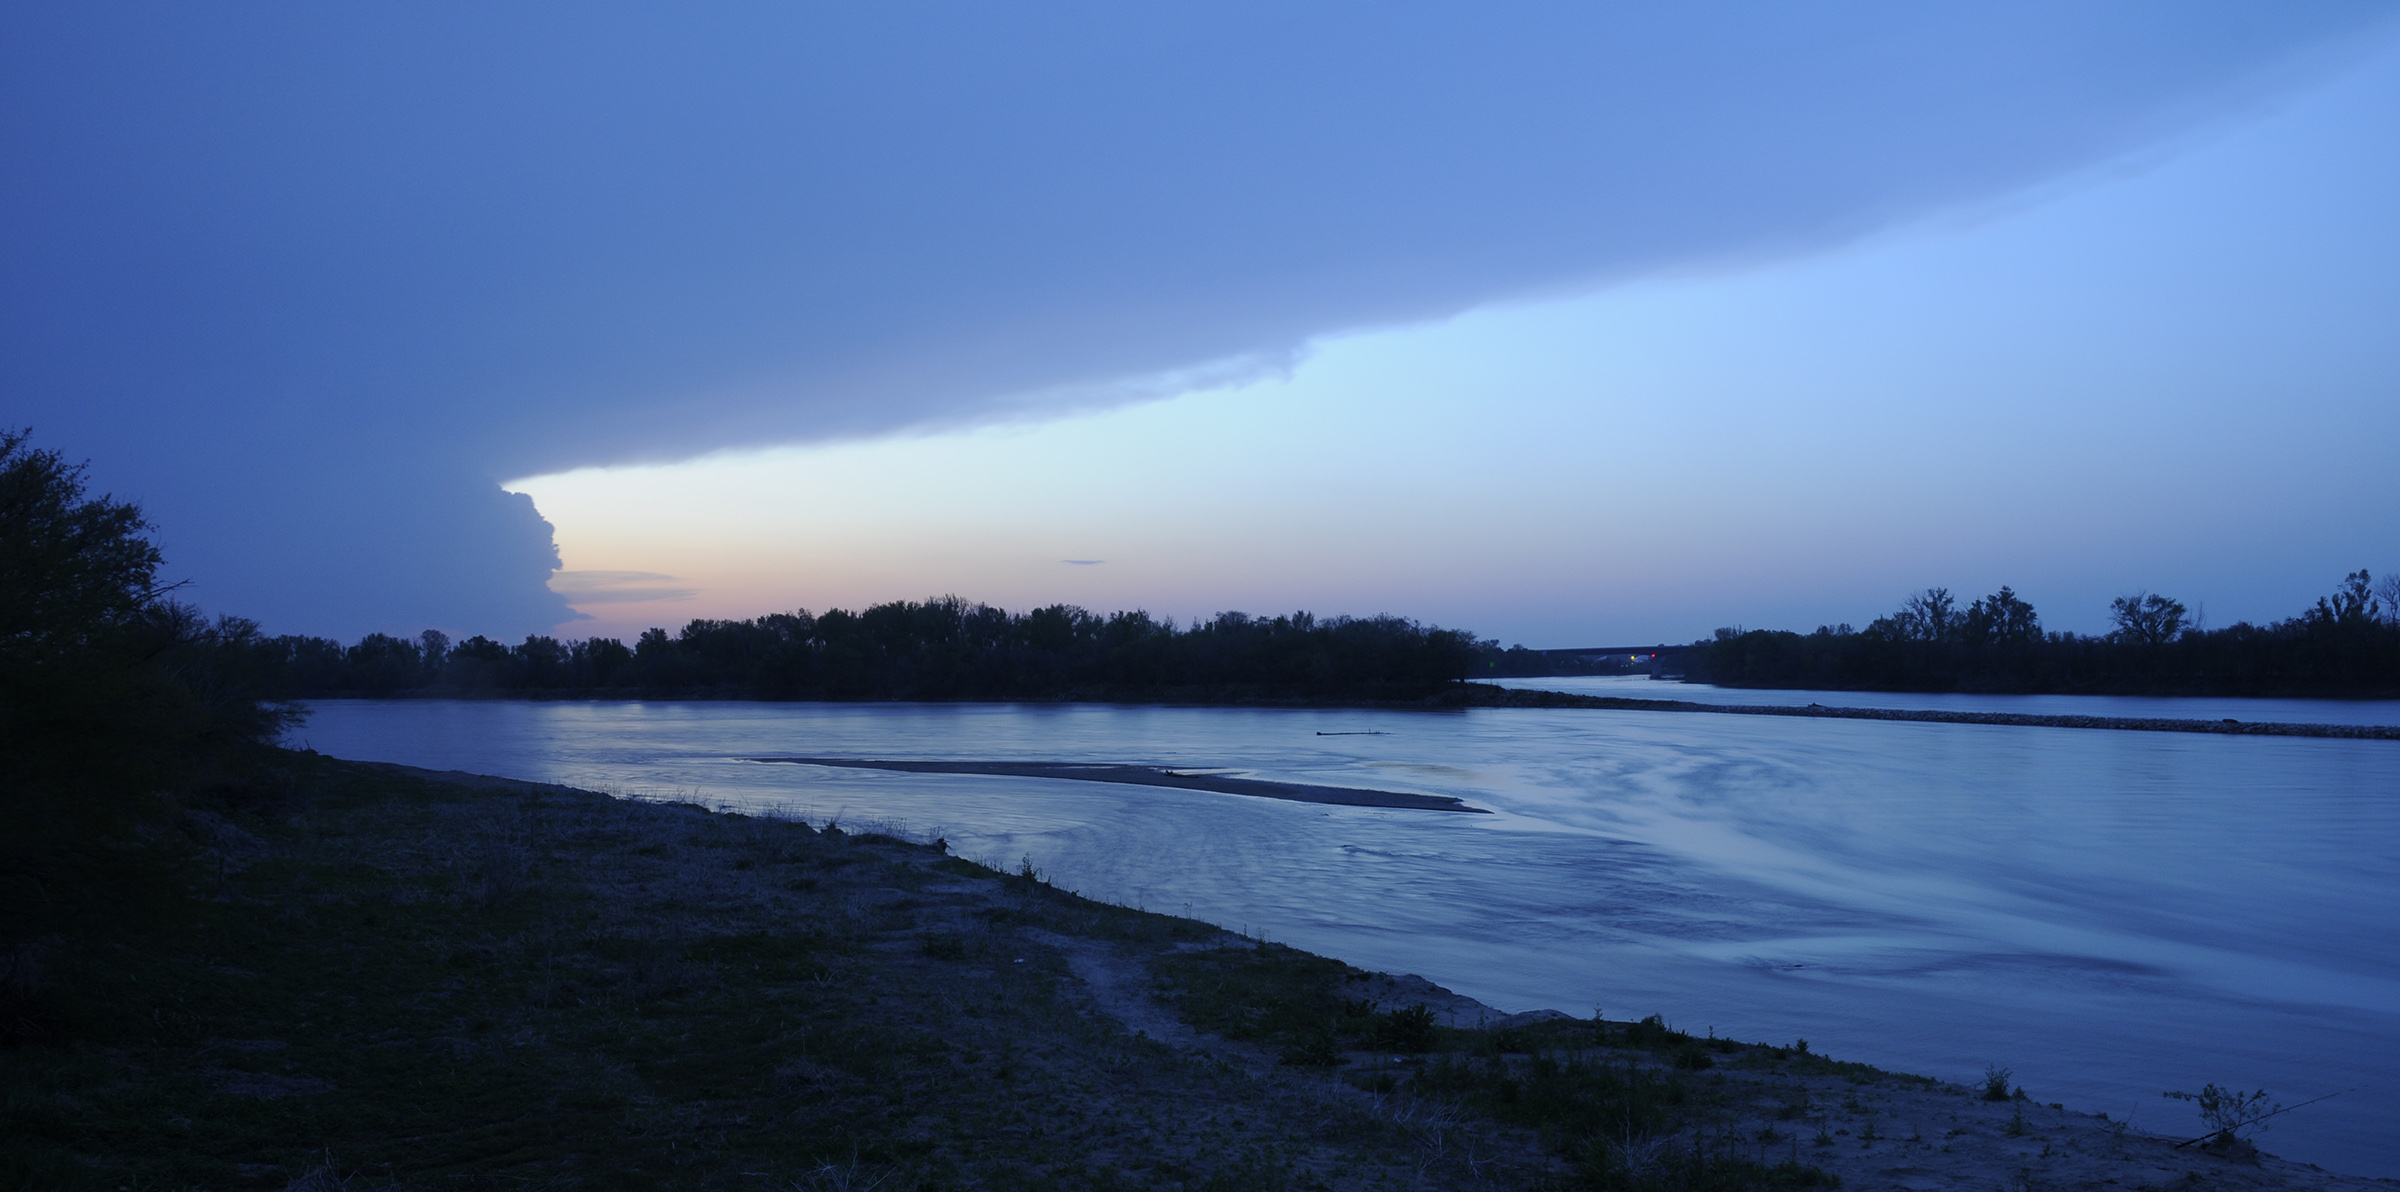 The confluence of the Platte and Missouri rivers near Plattsmouth, Neb. (Michael Forsberg)